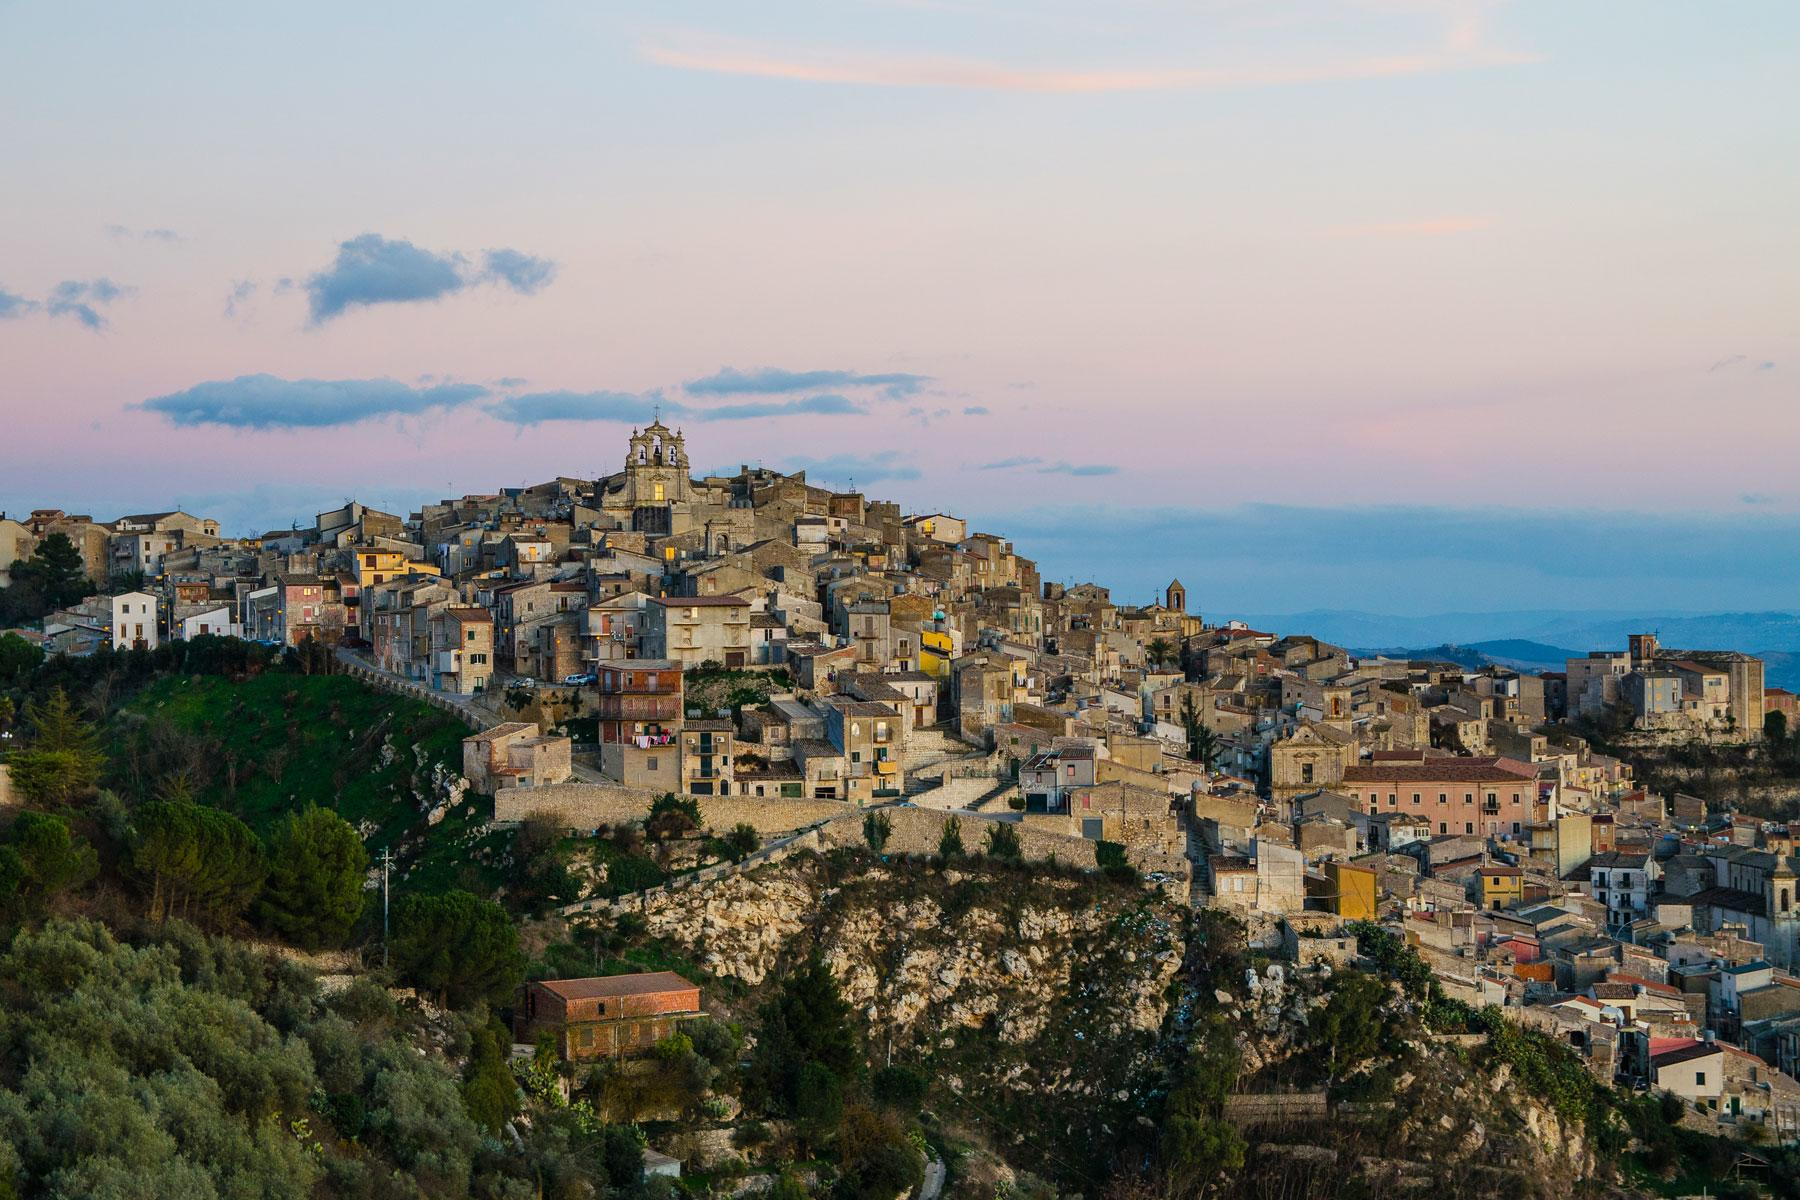 How Do You Buy a $20 House for Sale in Italy